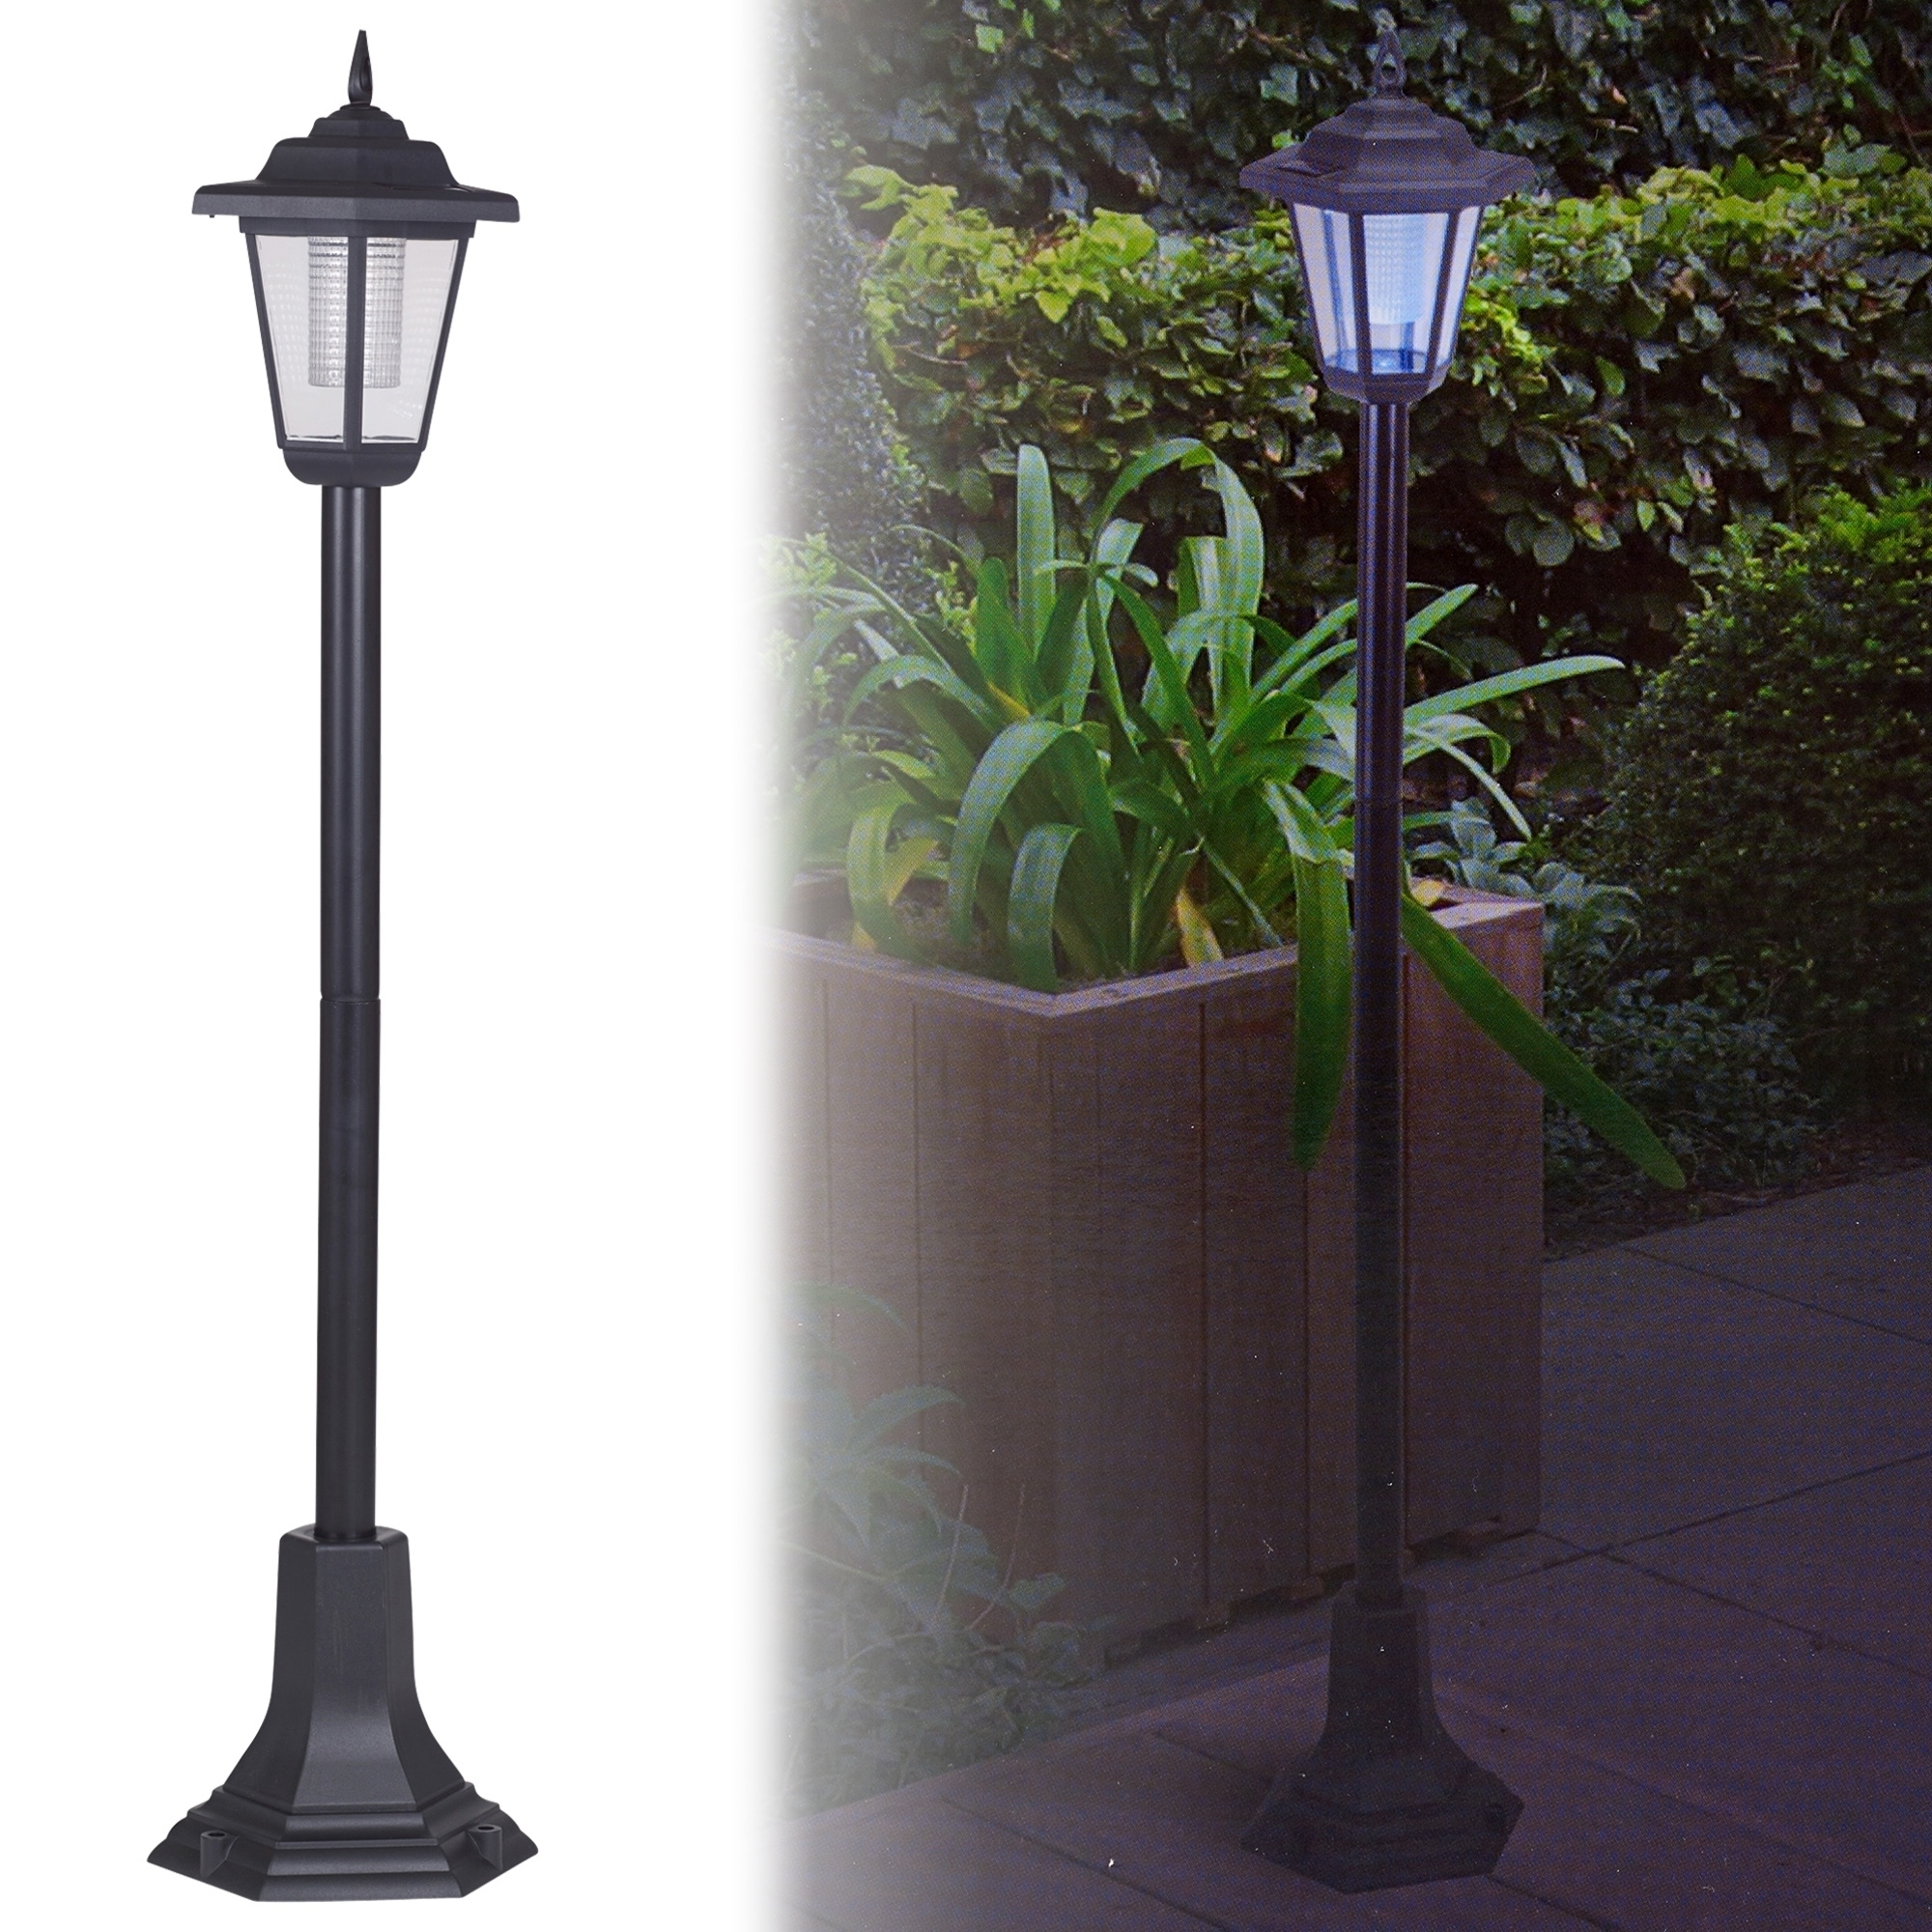 Outdoor Standing Lanterns Intended For Most Up To Date Solar Powered Garden Lights Lantern Lamp Black Led Pathway Driveway (View 9 of 20)